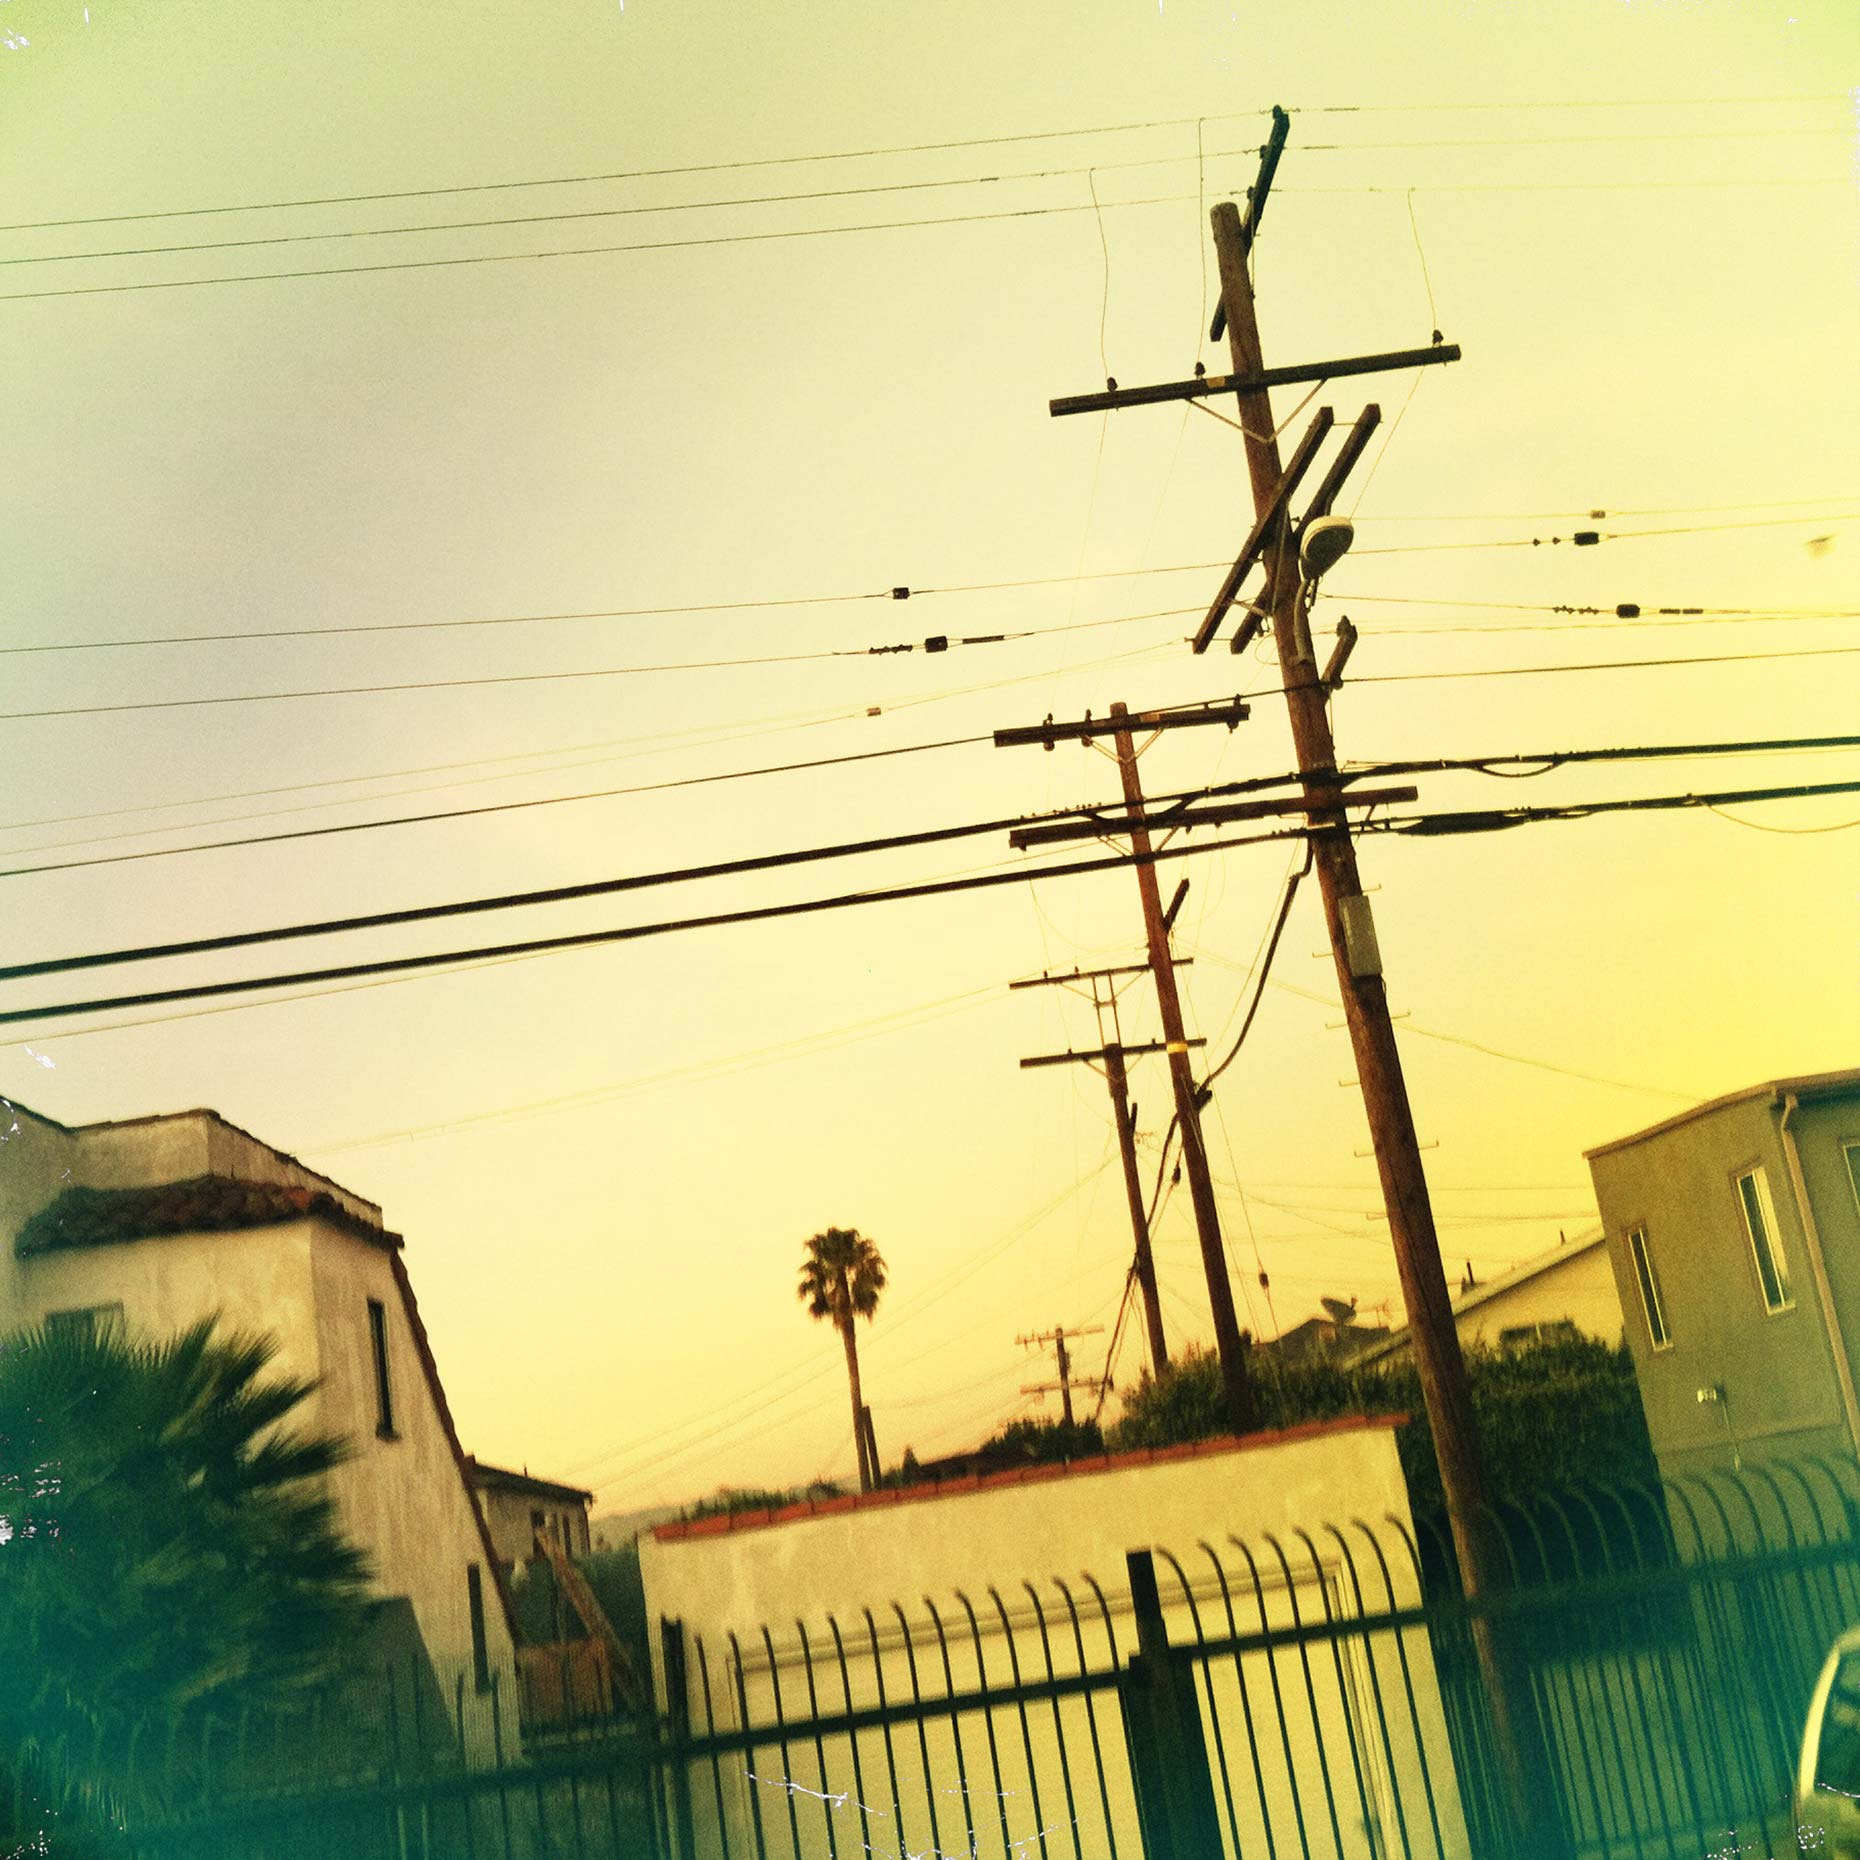 Los_Angeles_Alley_IMG_3840